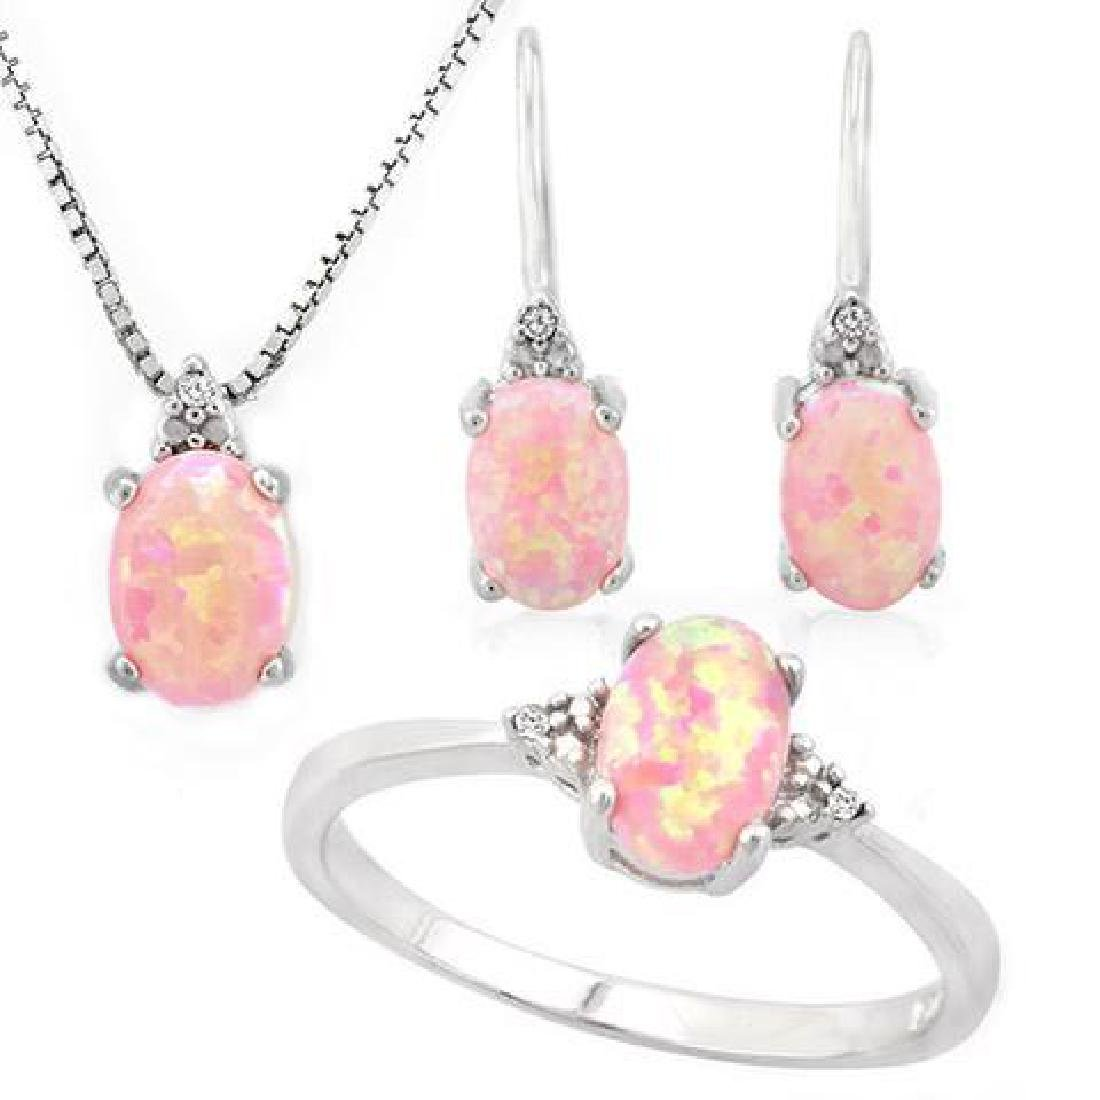 1 4/5 CARAT CREATED PINK FIRE OPAL  (15 PCS) DIAMOND 92